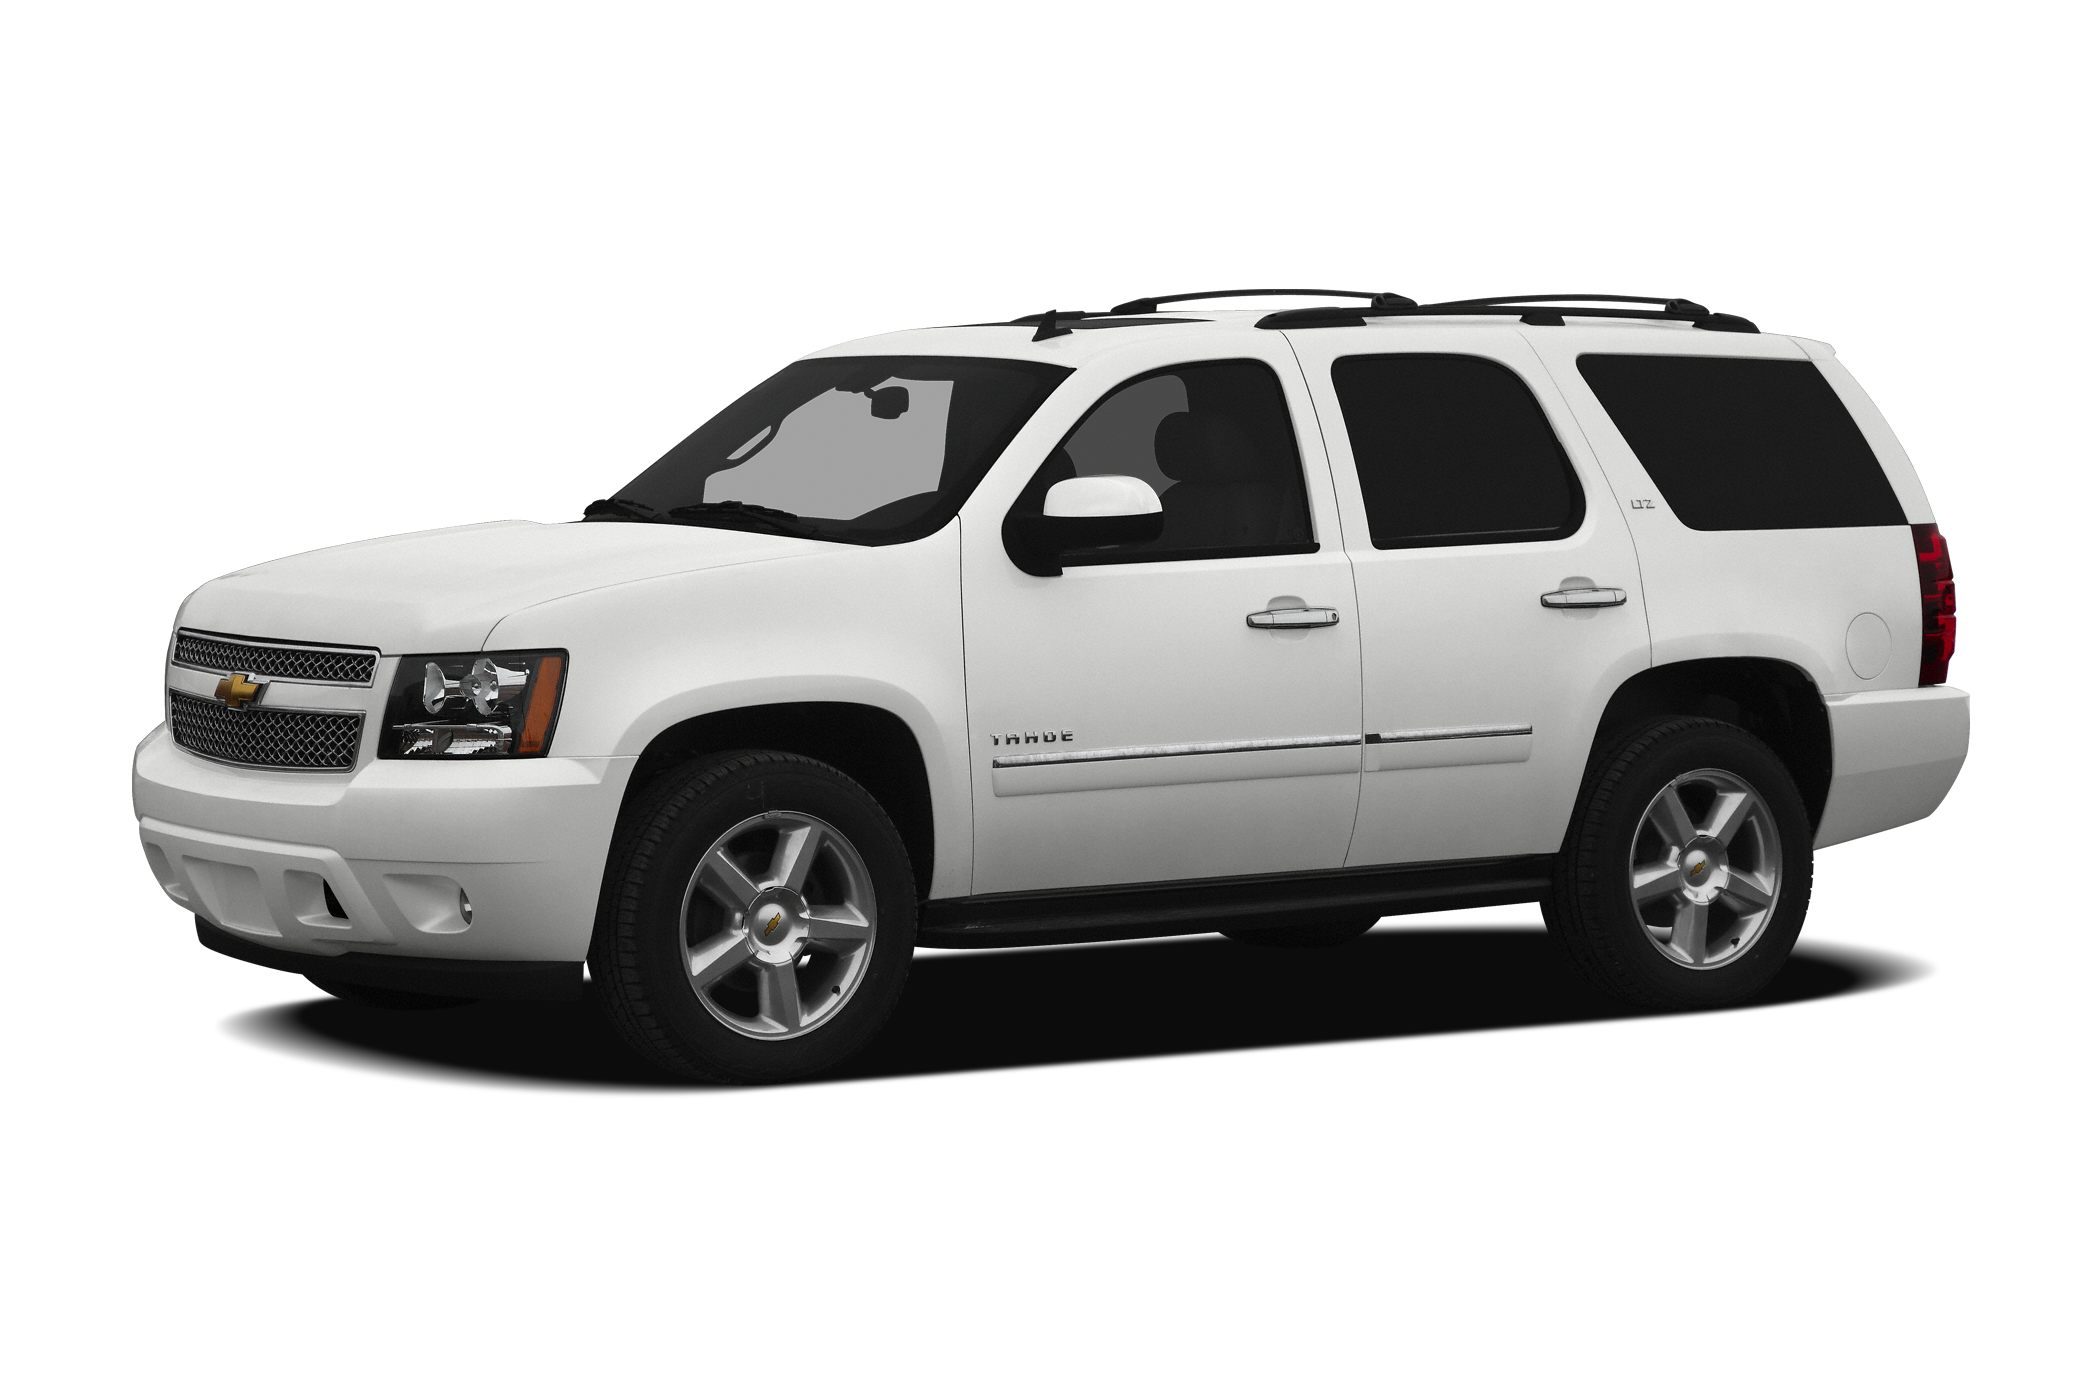 2008 Chevrolet Tahoe LS 4x4 Safety Features